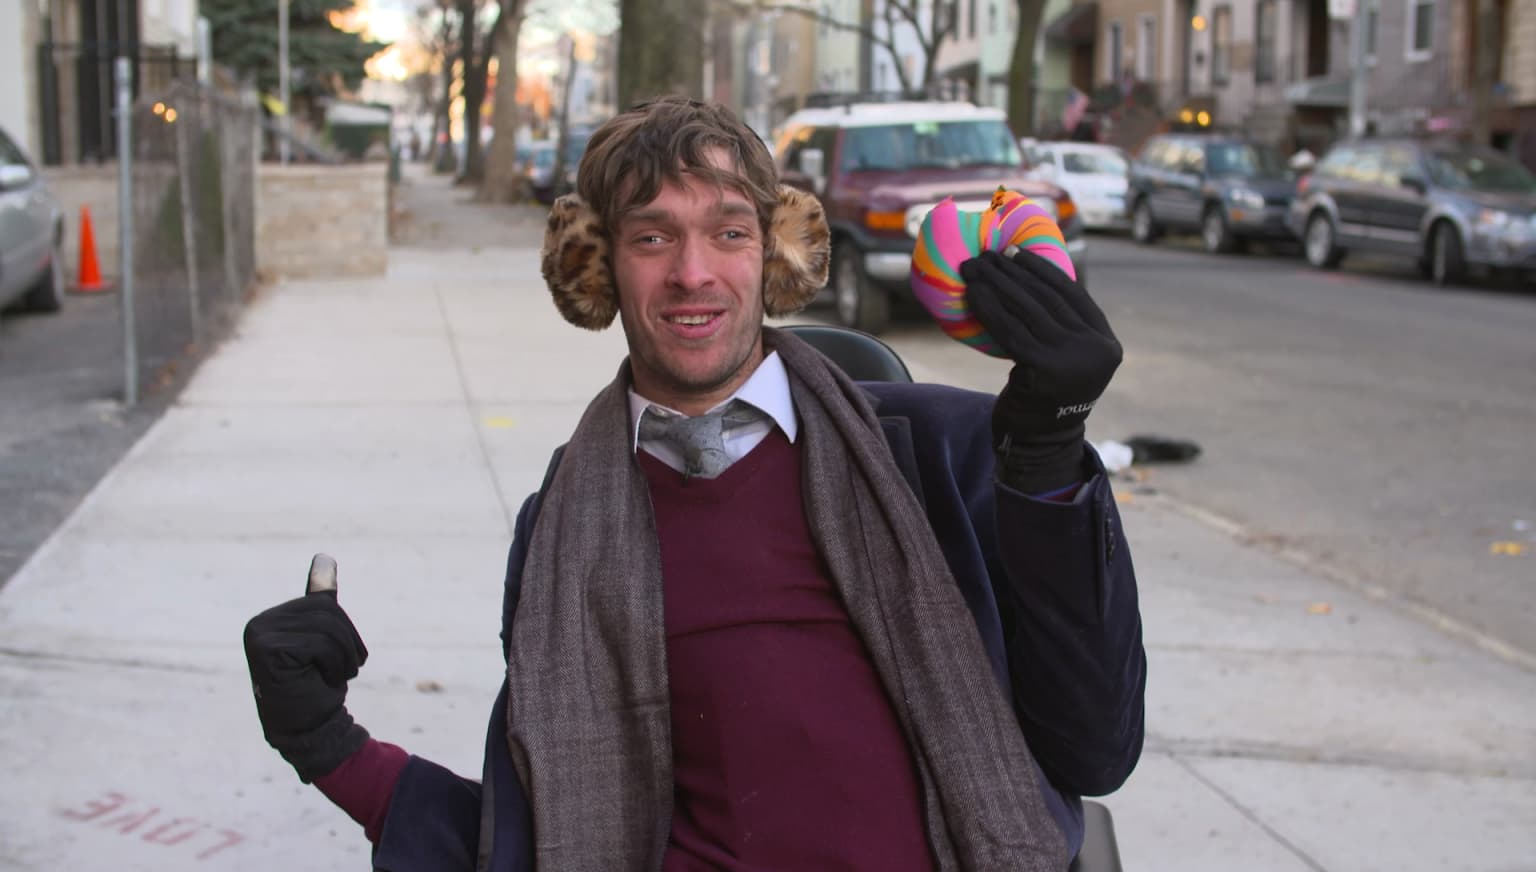 Zach Anner Quest for the Rainbow Bagel